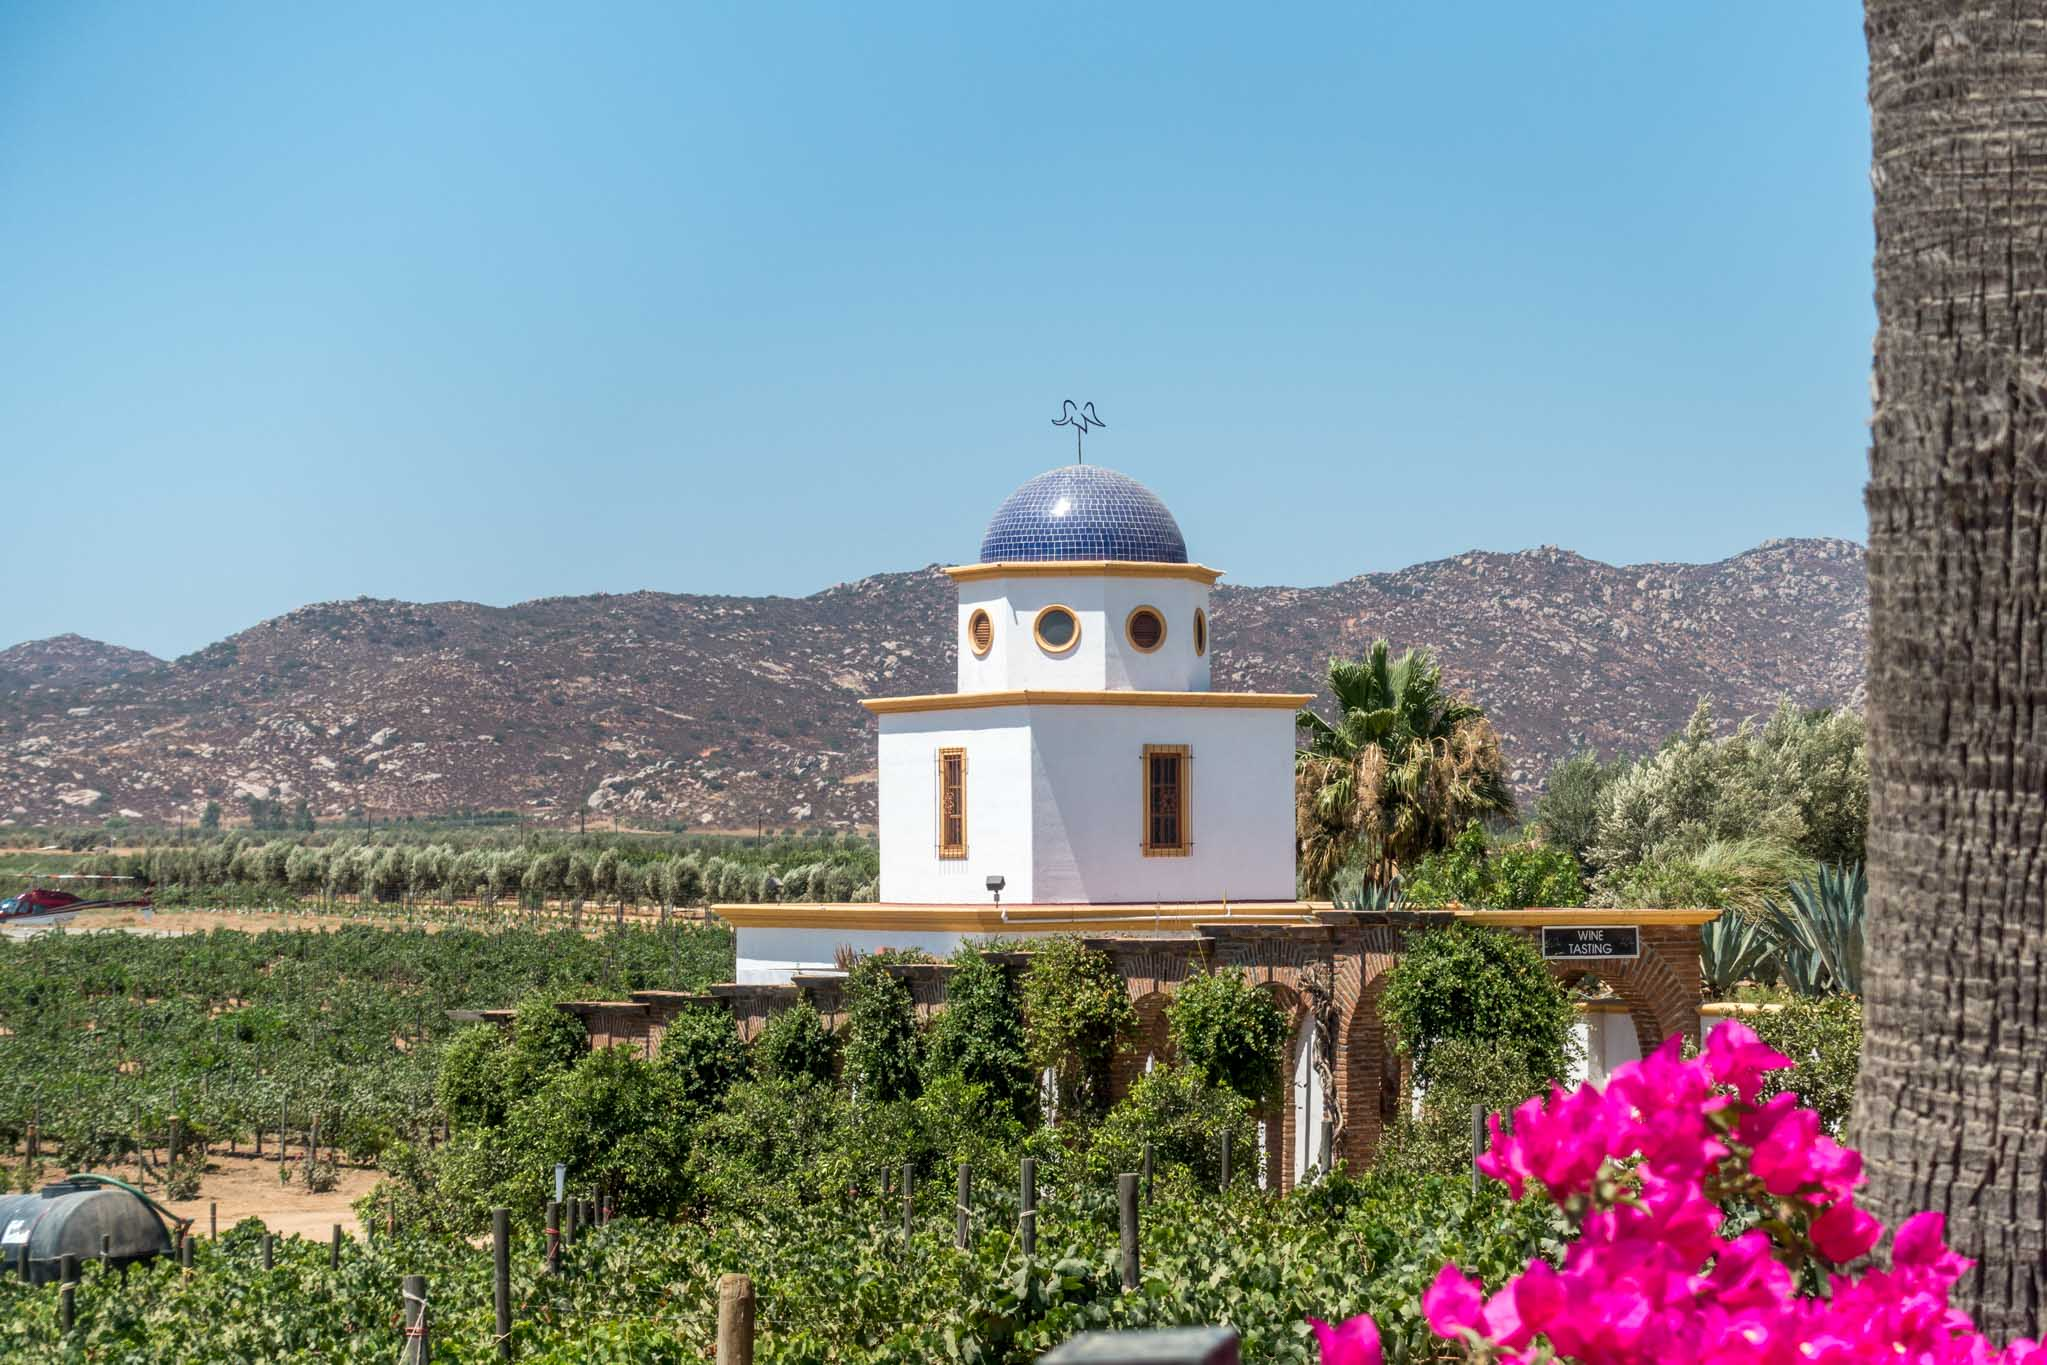 A building in one of the Valle de Guadalupe wineries.